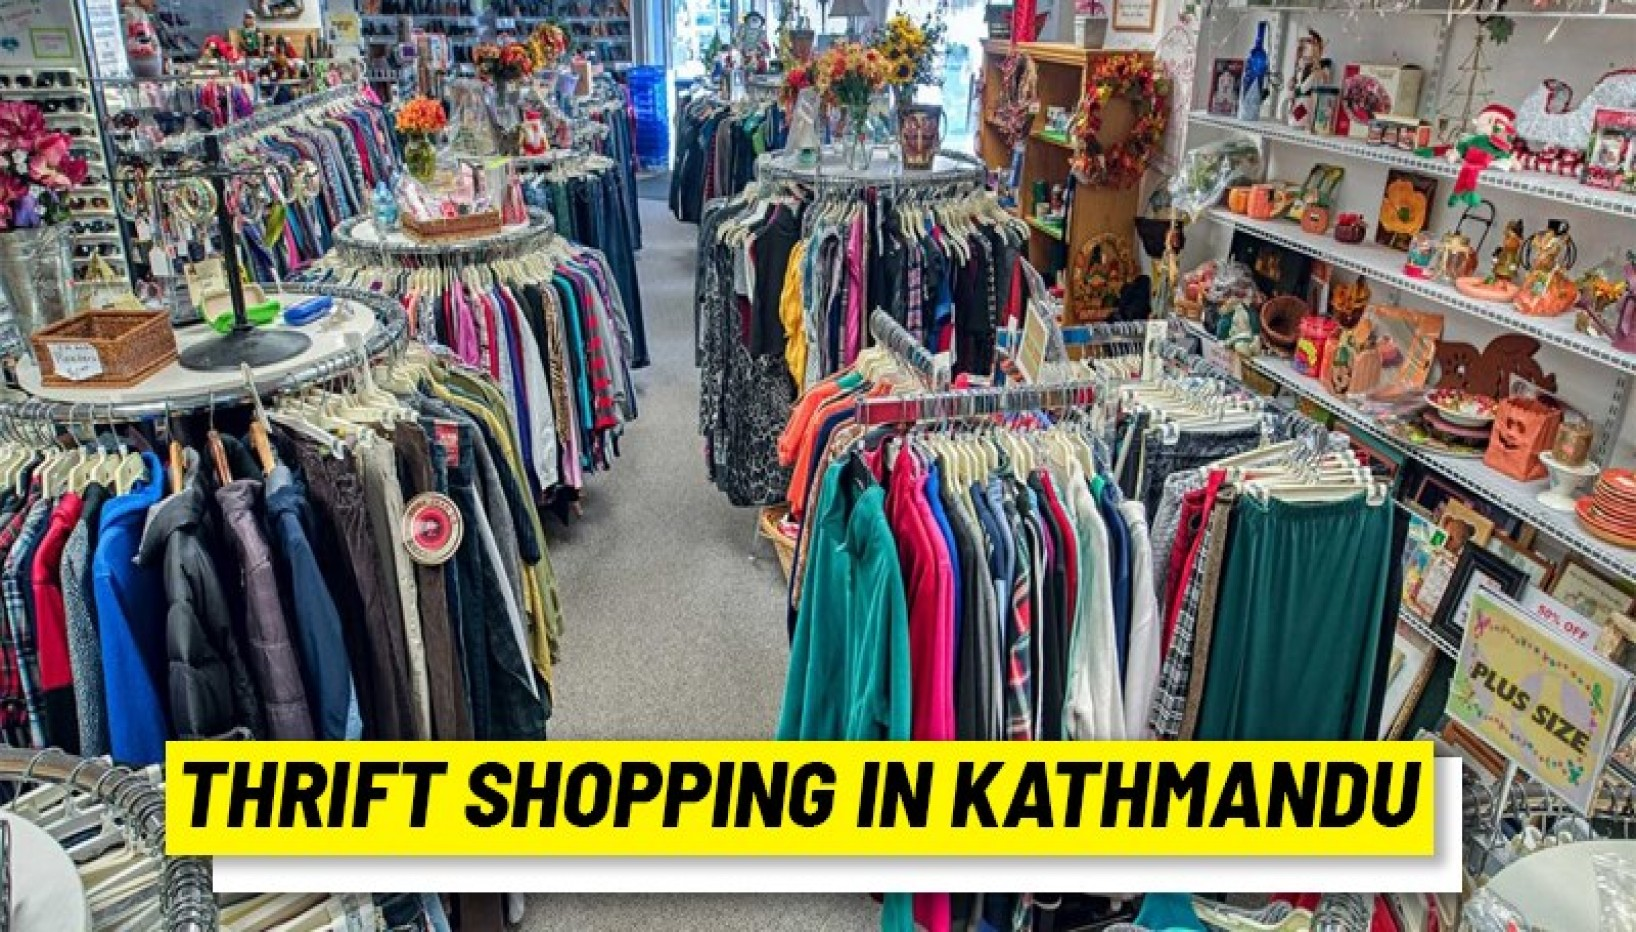 Here's Why You Should Consider Thrift Shopping For Clothes, And Where You Can Do So In Kathmandu